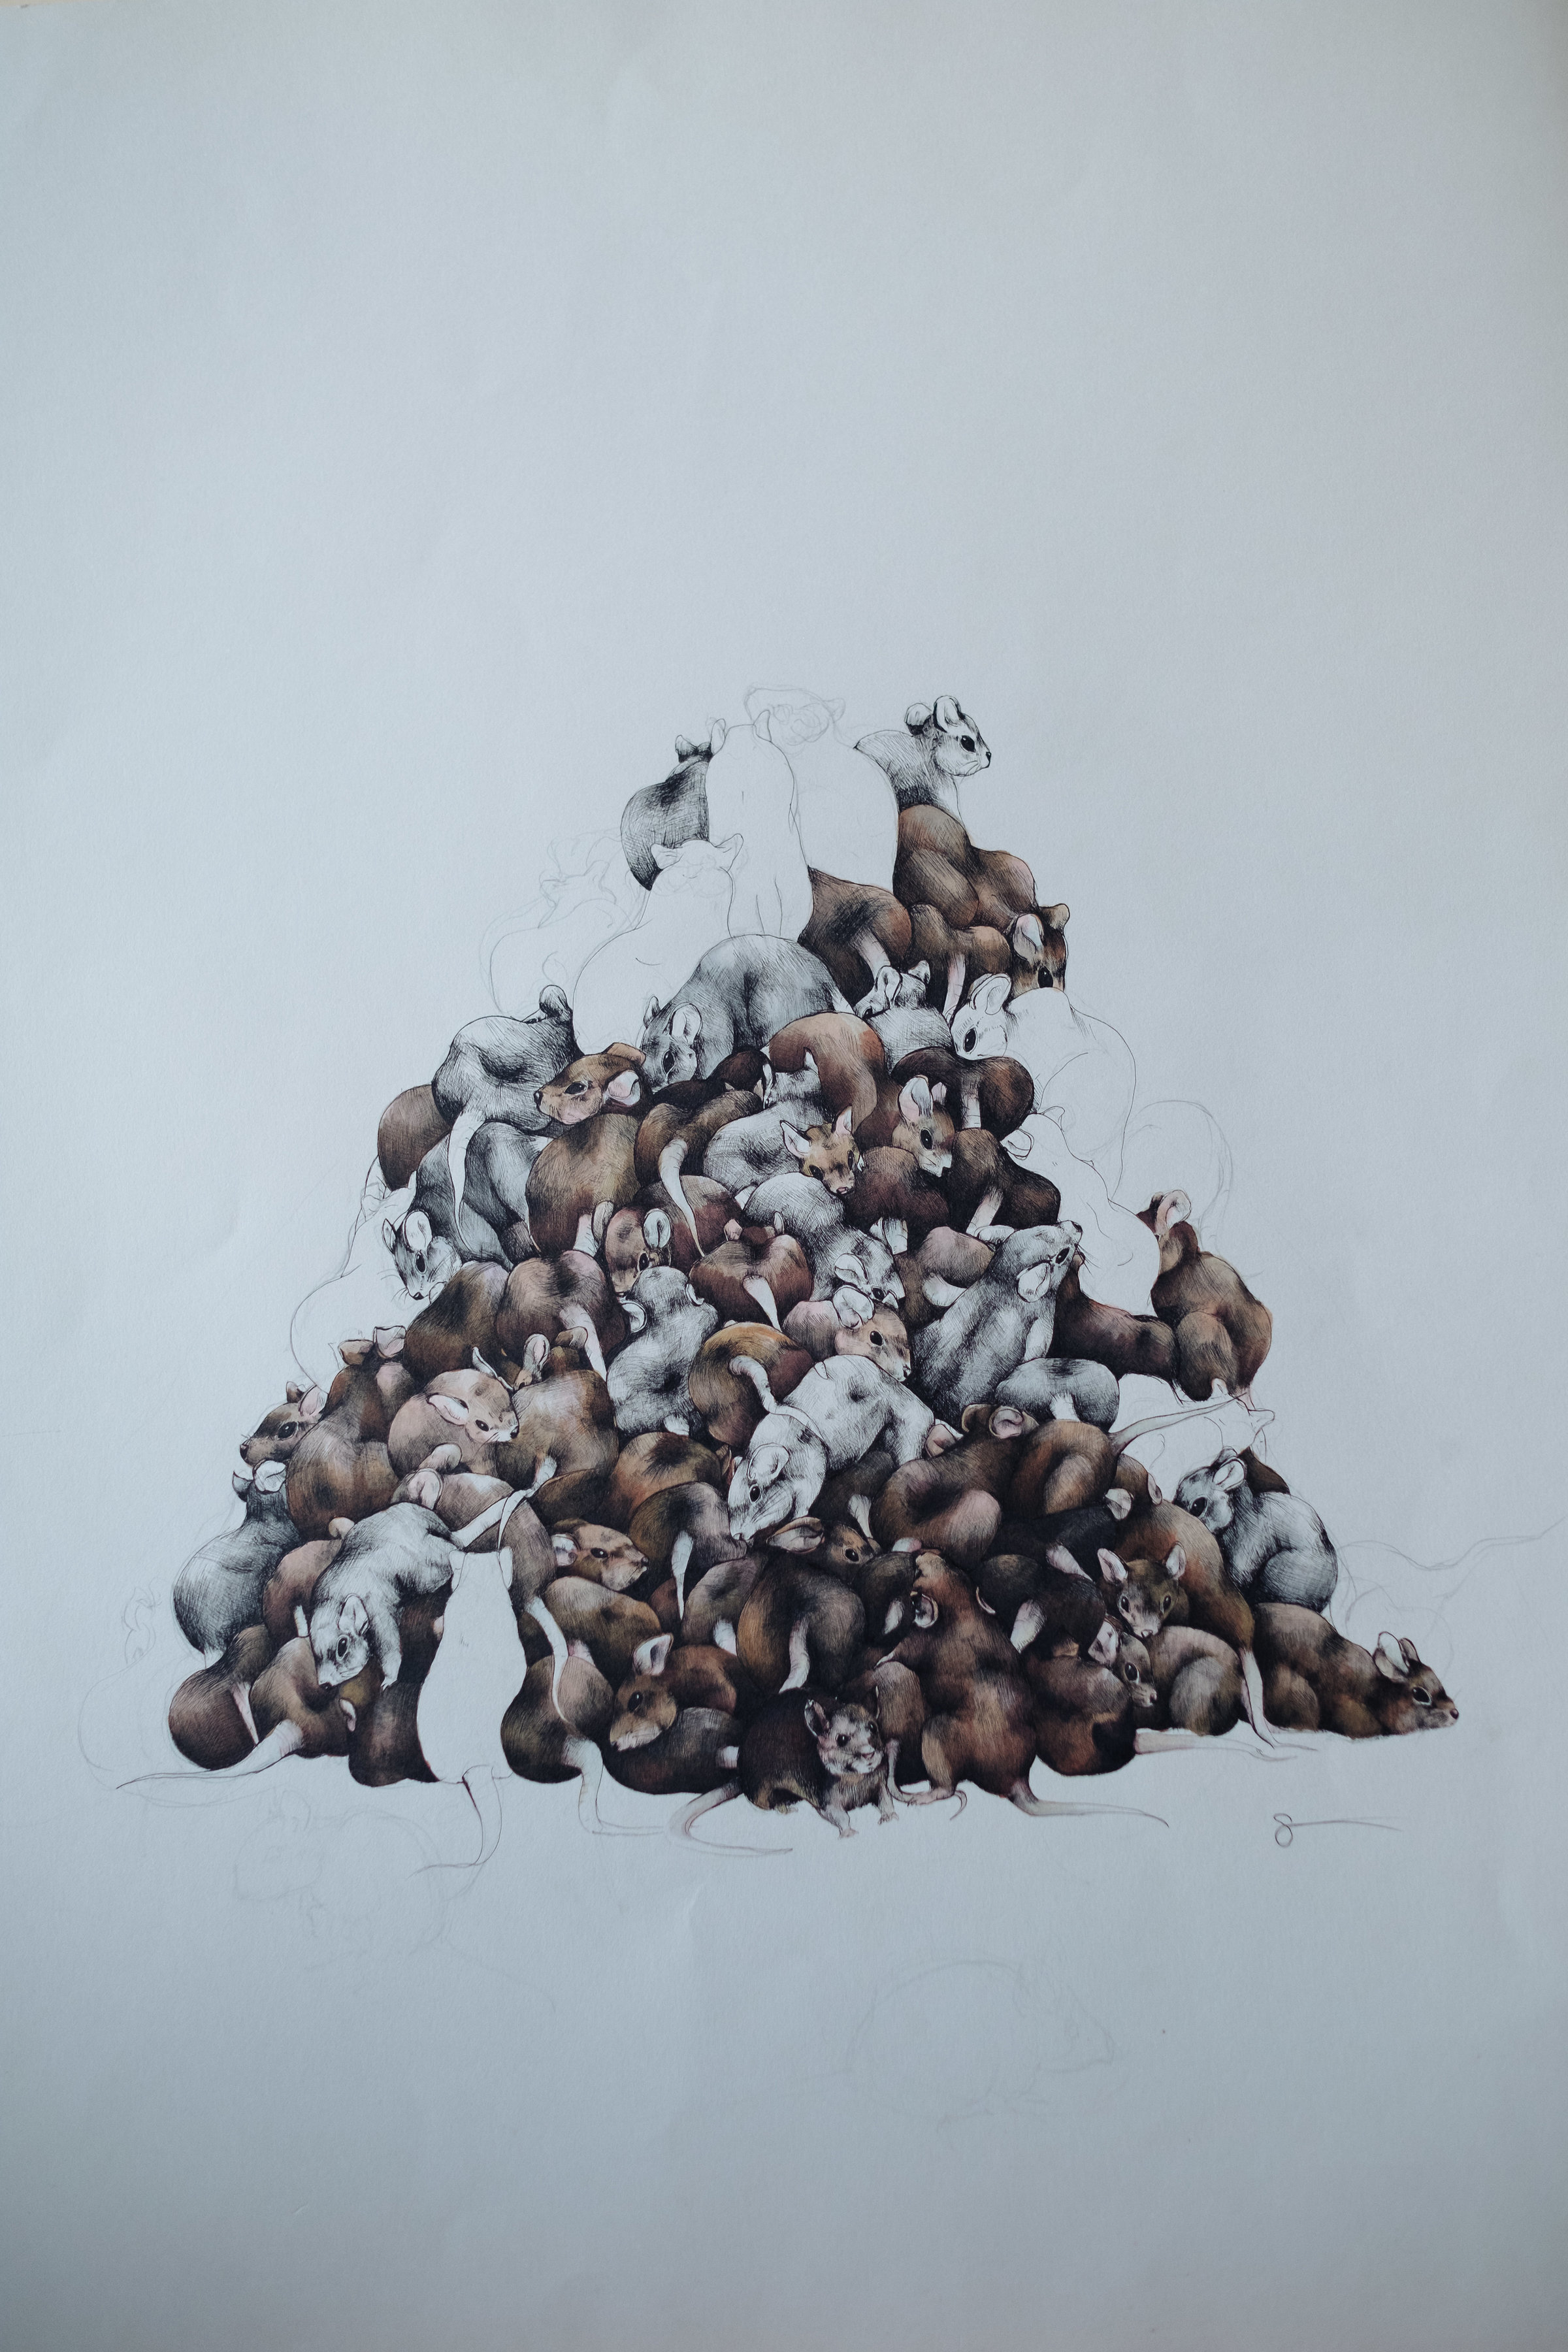 A Pile of Mice - detail